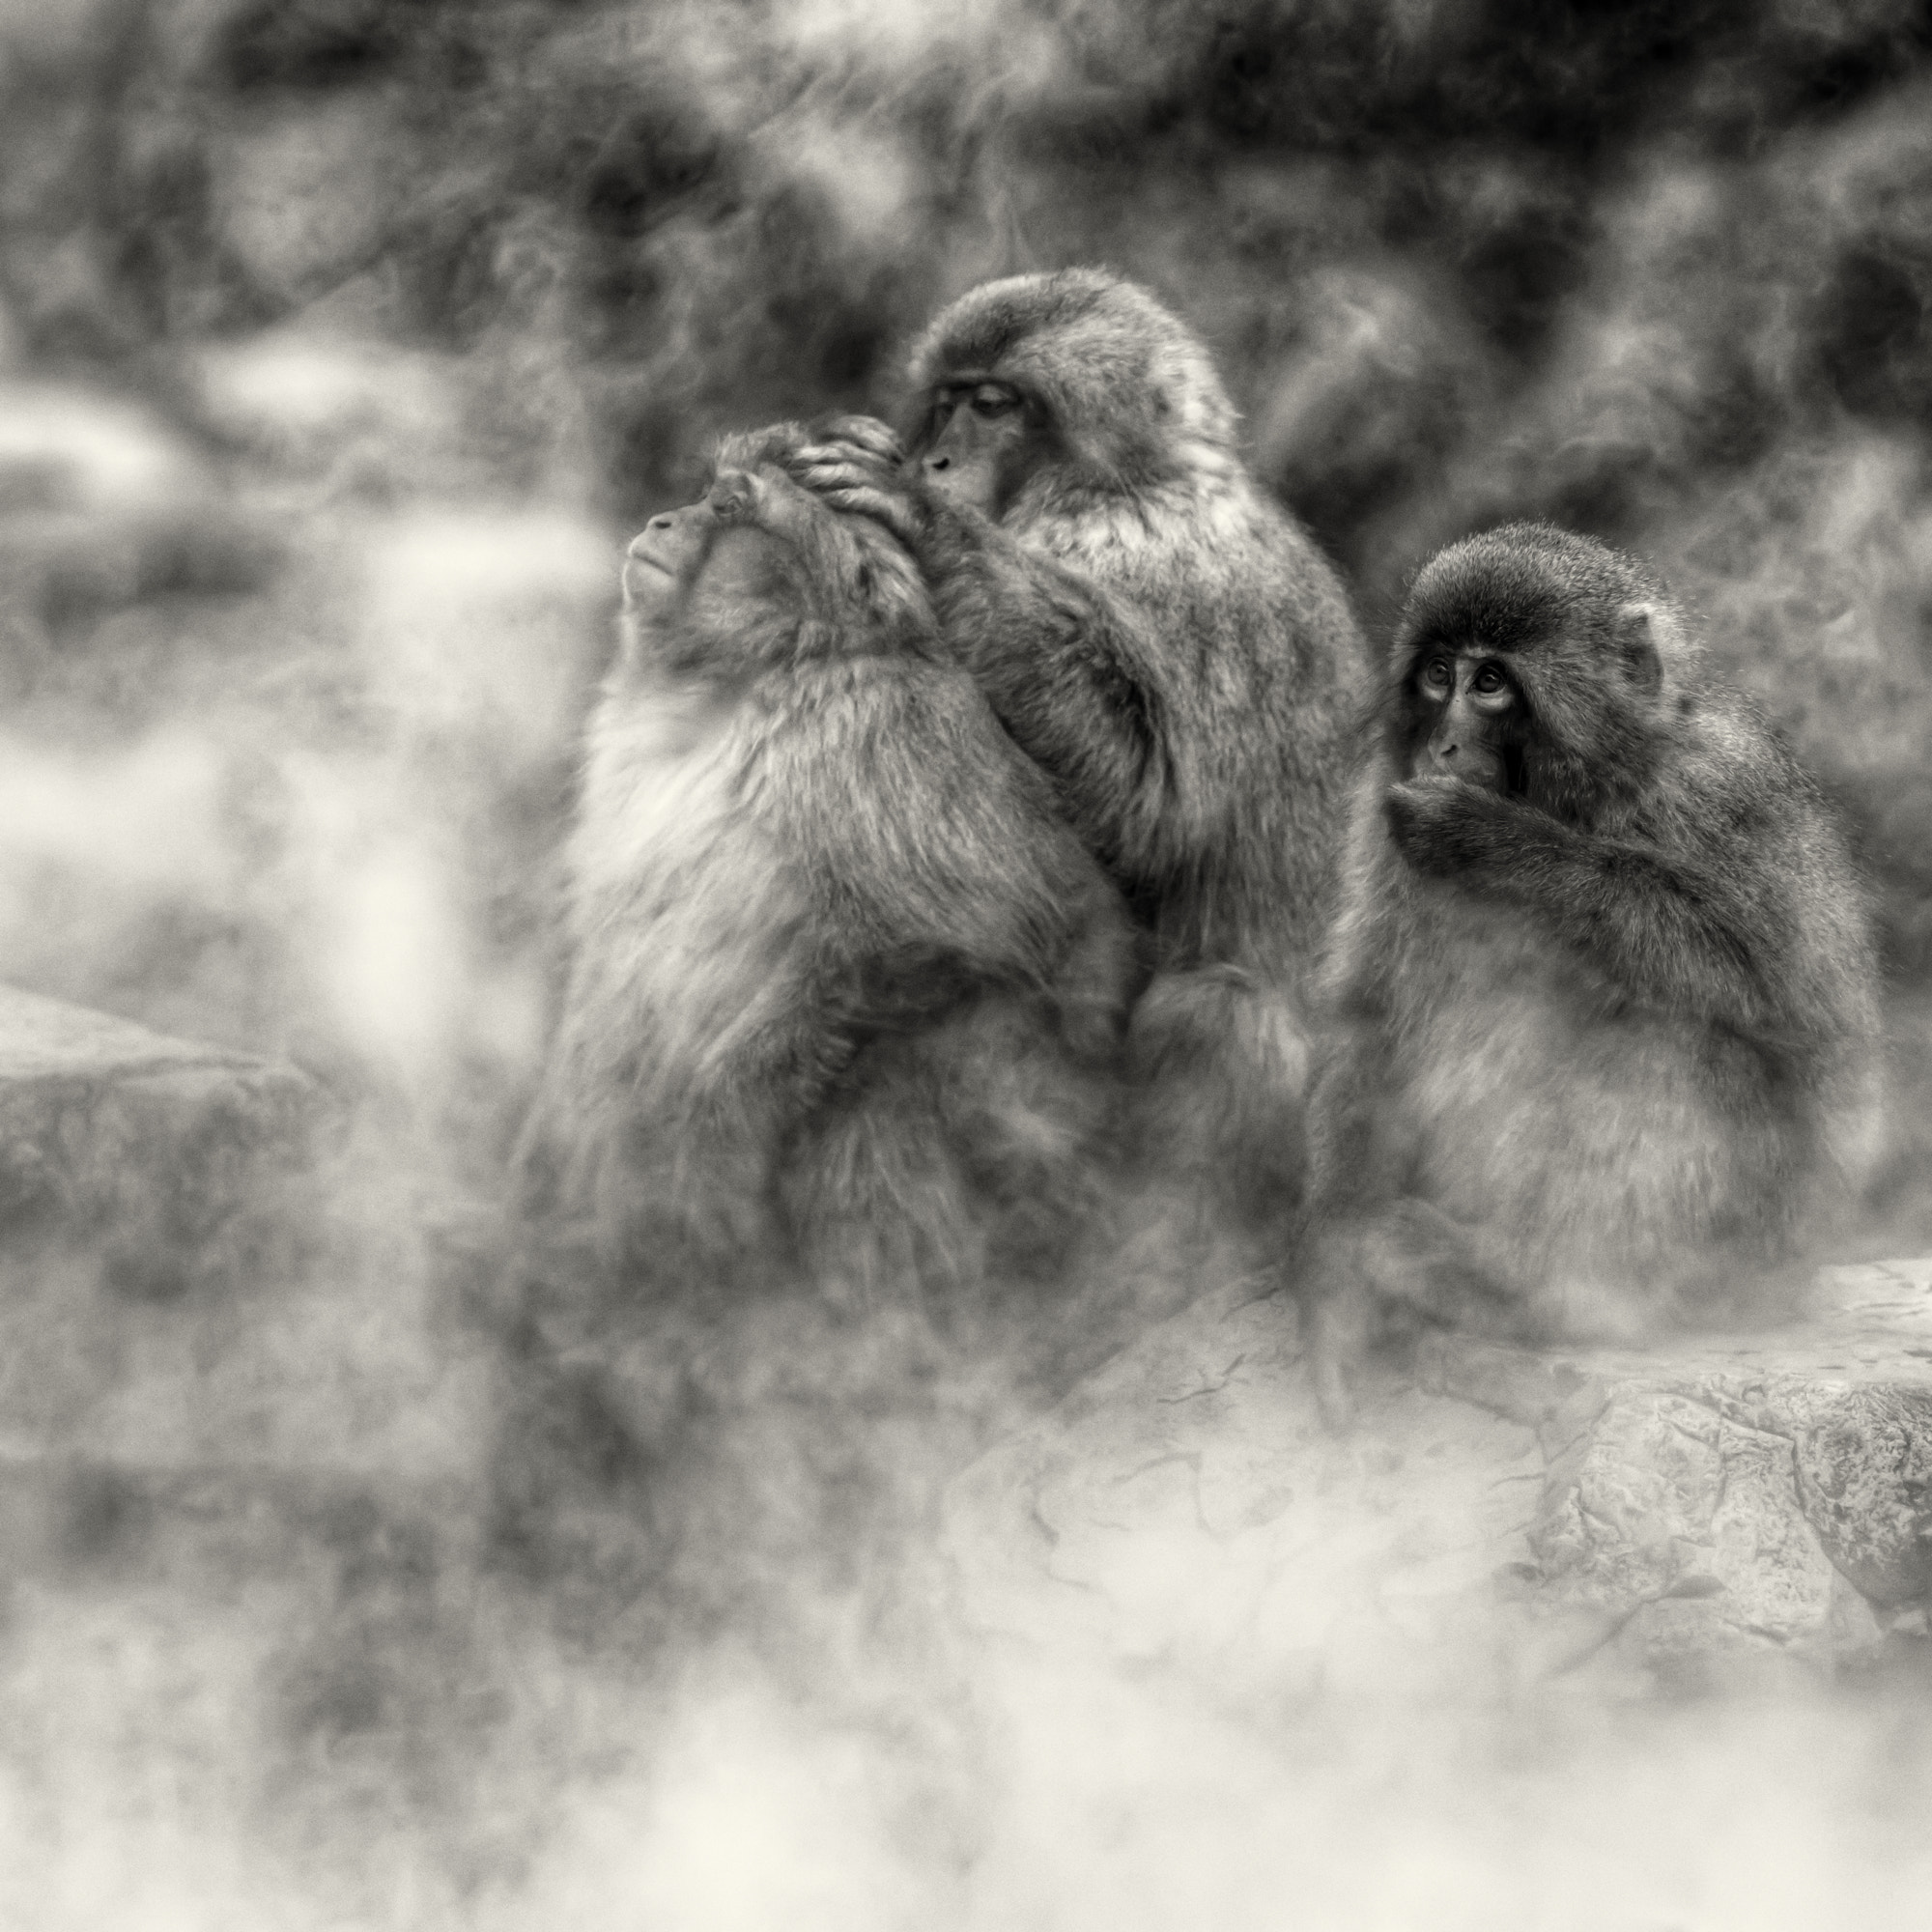 Photograph Into a misted up world by regis boileau on 500px